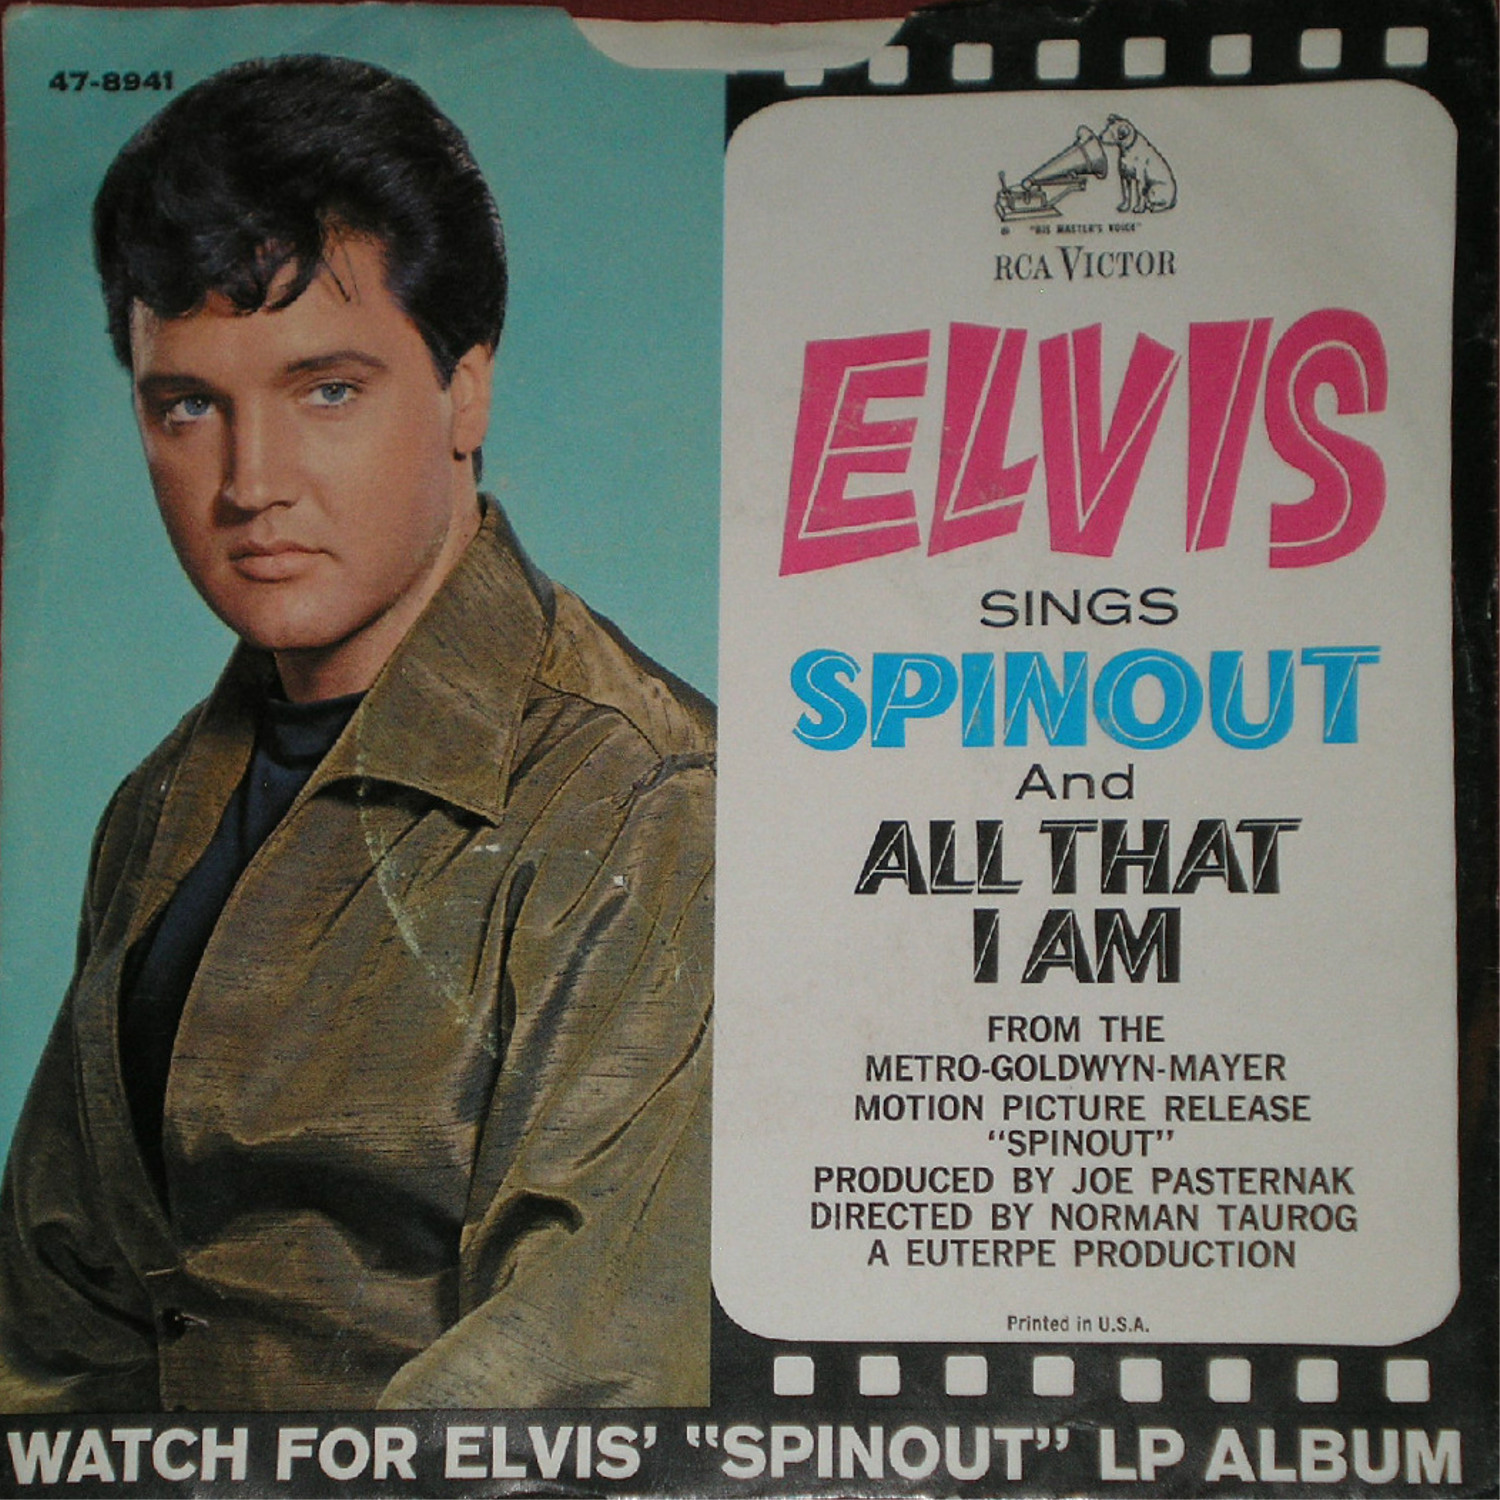 Spinout / All That I Am 47-8941axwuas